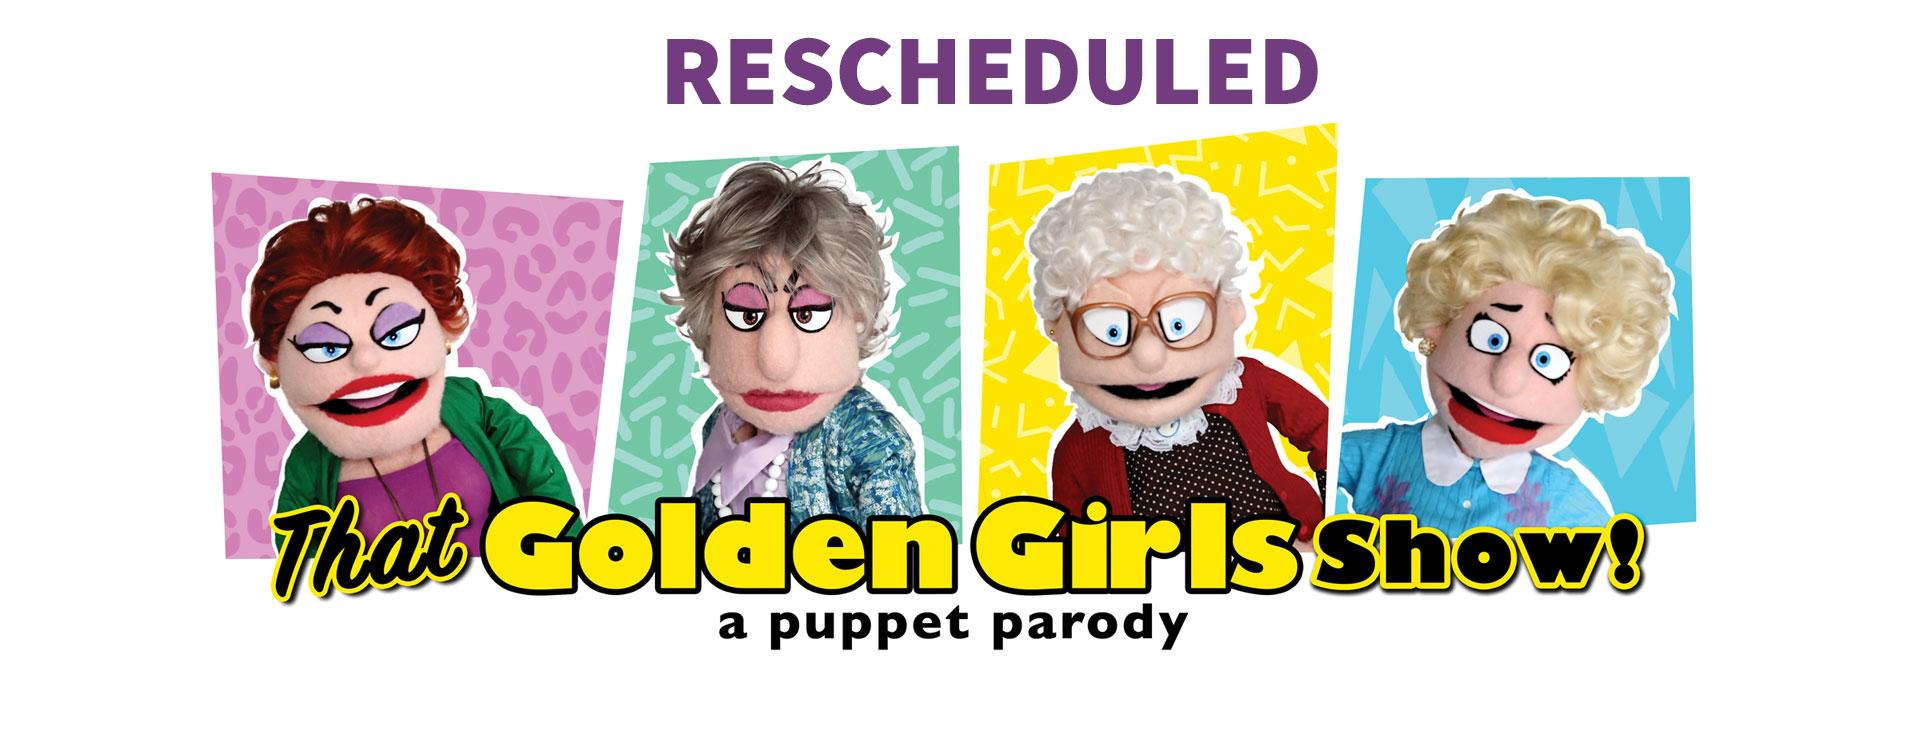 The Golden Girls Puppets and Logo